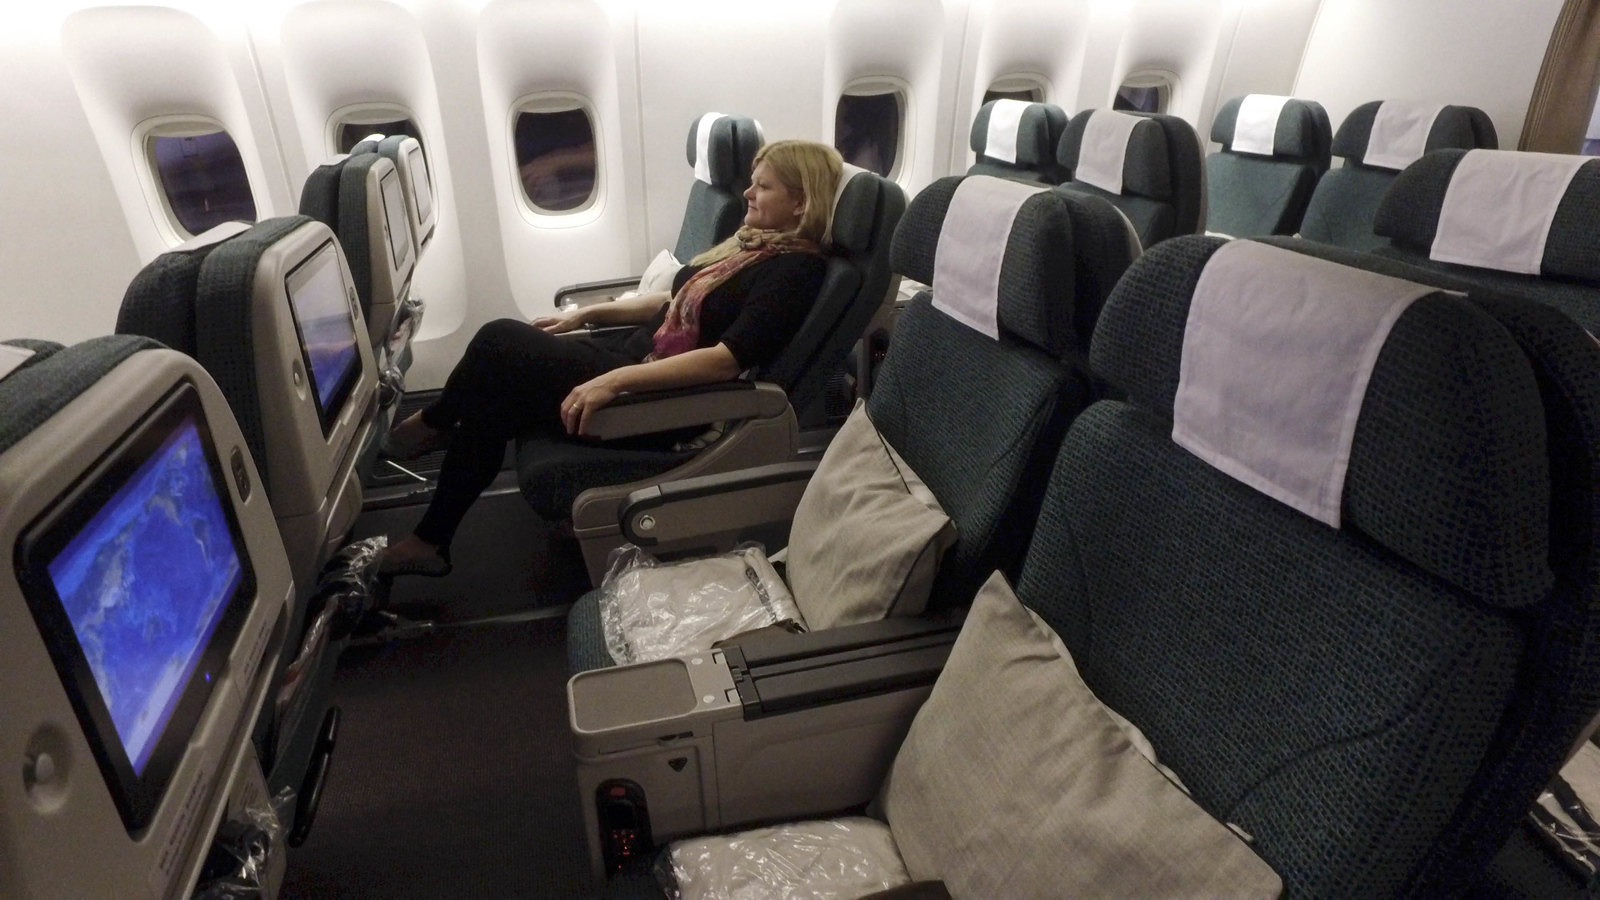 Cathay Pacific premium economy seats were quite comfortable and roomy